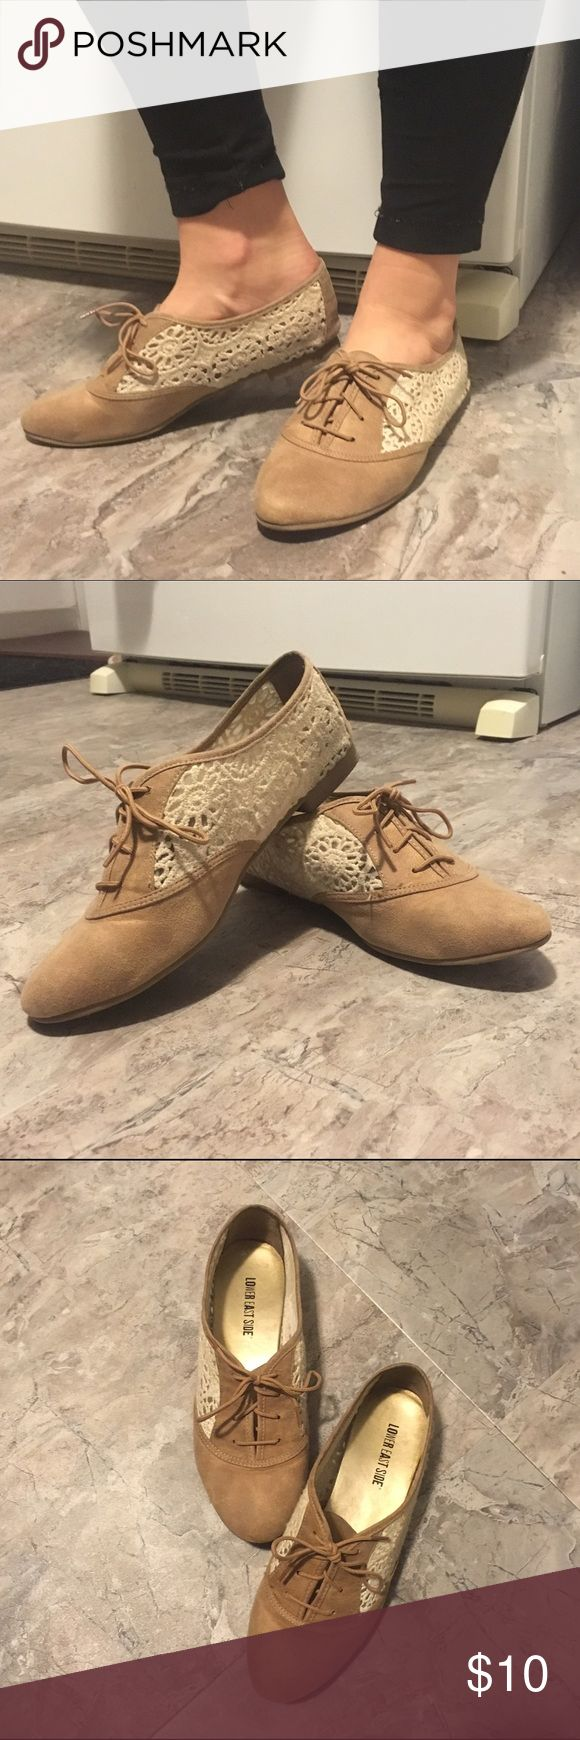 Classic Lace Oxfords These suede Oxford shoes with lace sides will add an element of elegance to every outfit you wear! Only worn once or twice. They're unfortunately too small for me but I know that you'll love them just as much as I do! Shoes